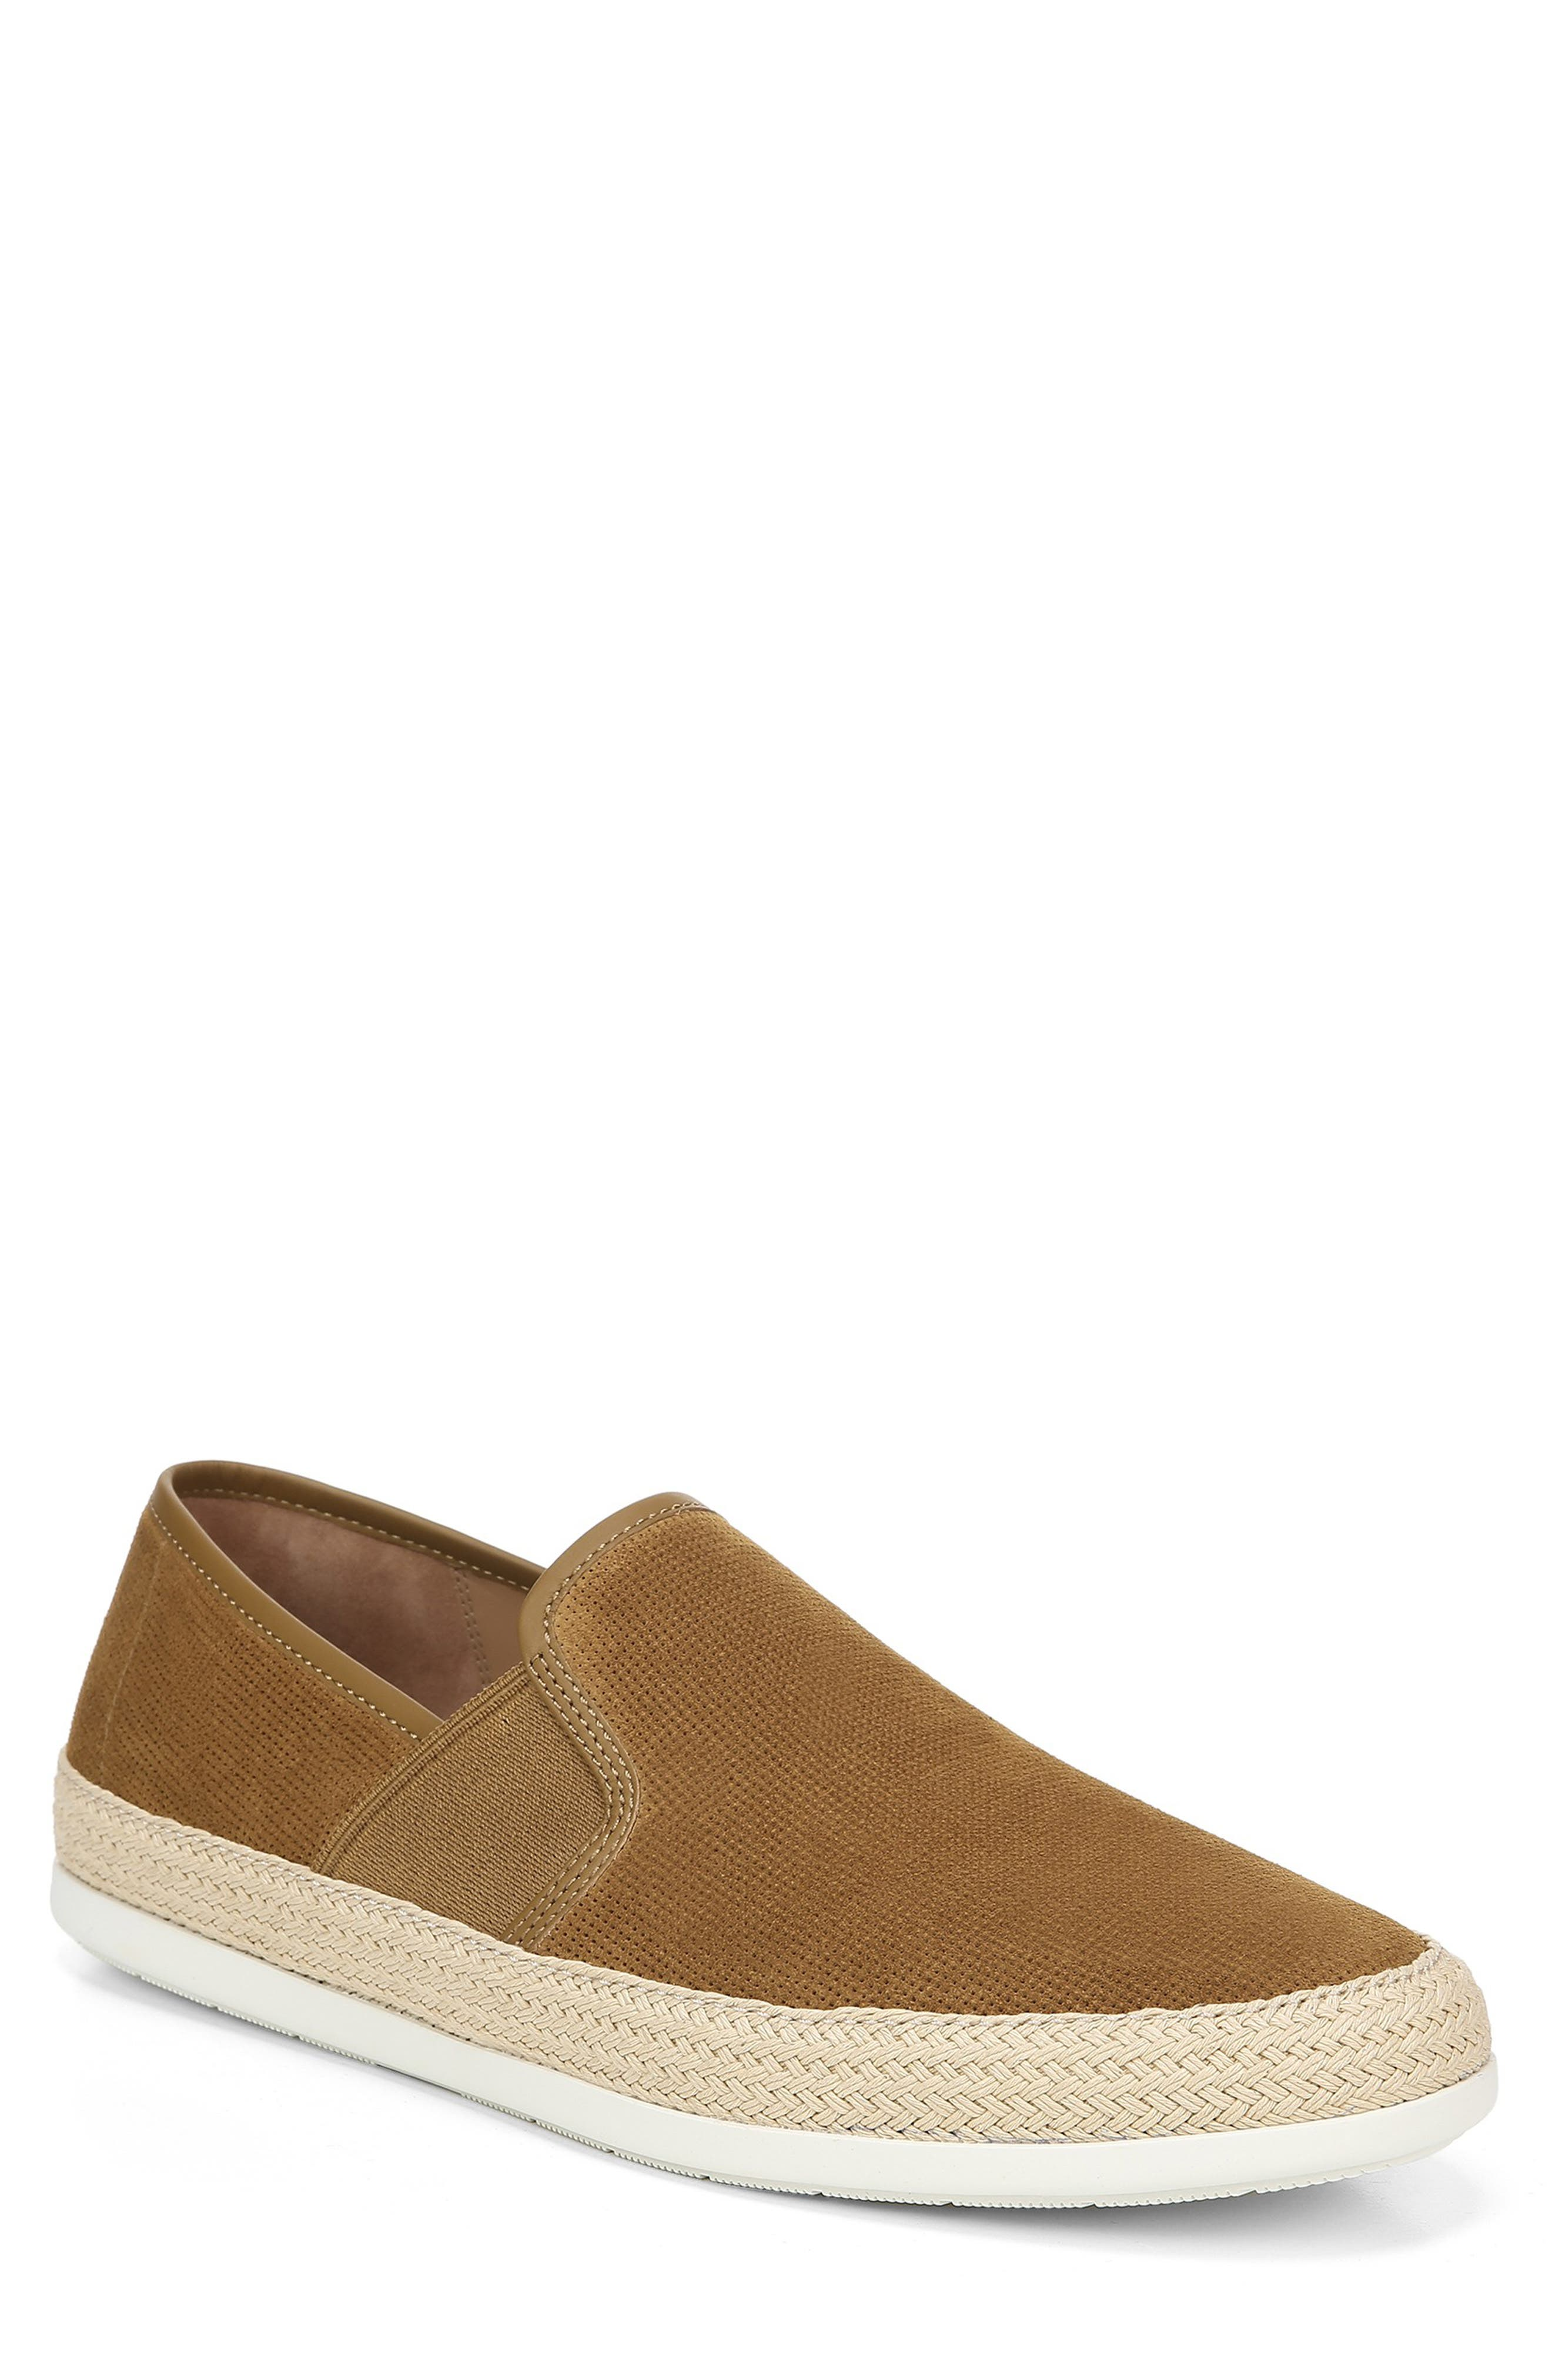 Chad Espadrille Slip-On Sneaker,                             Main thumbnail 1, color,                             WHEAT